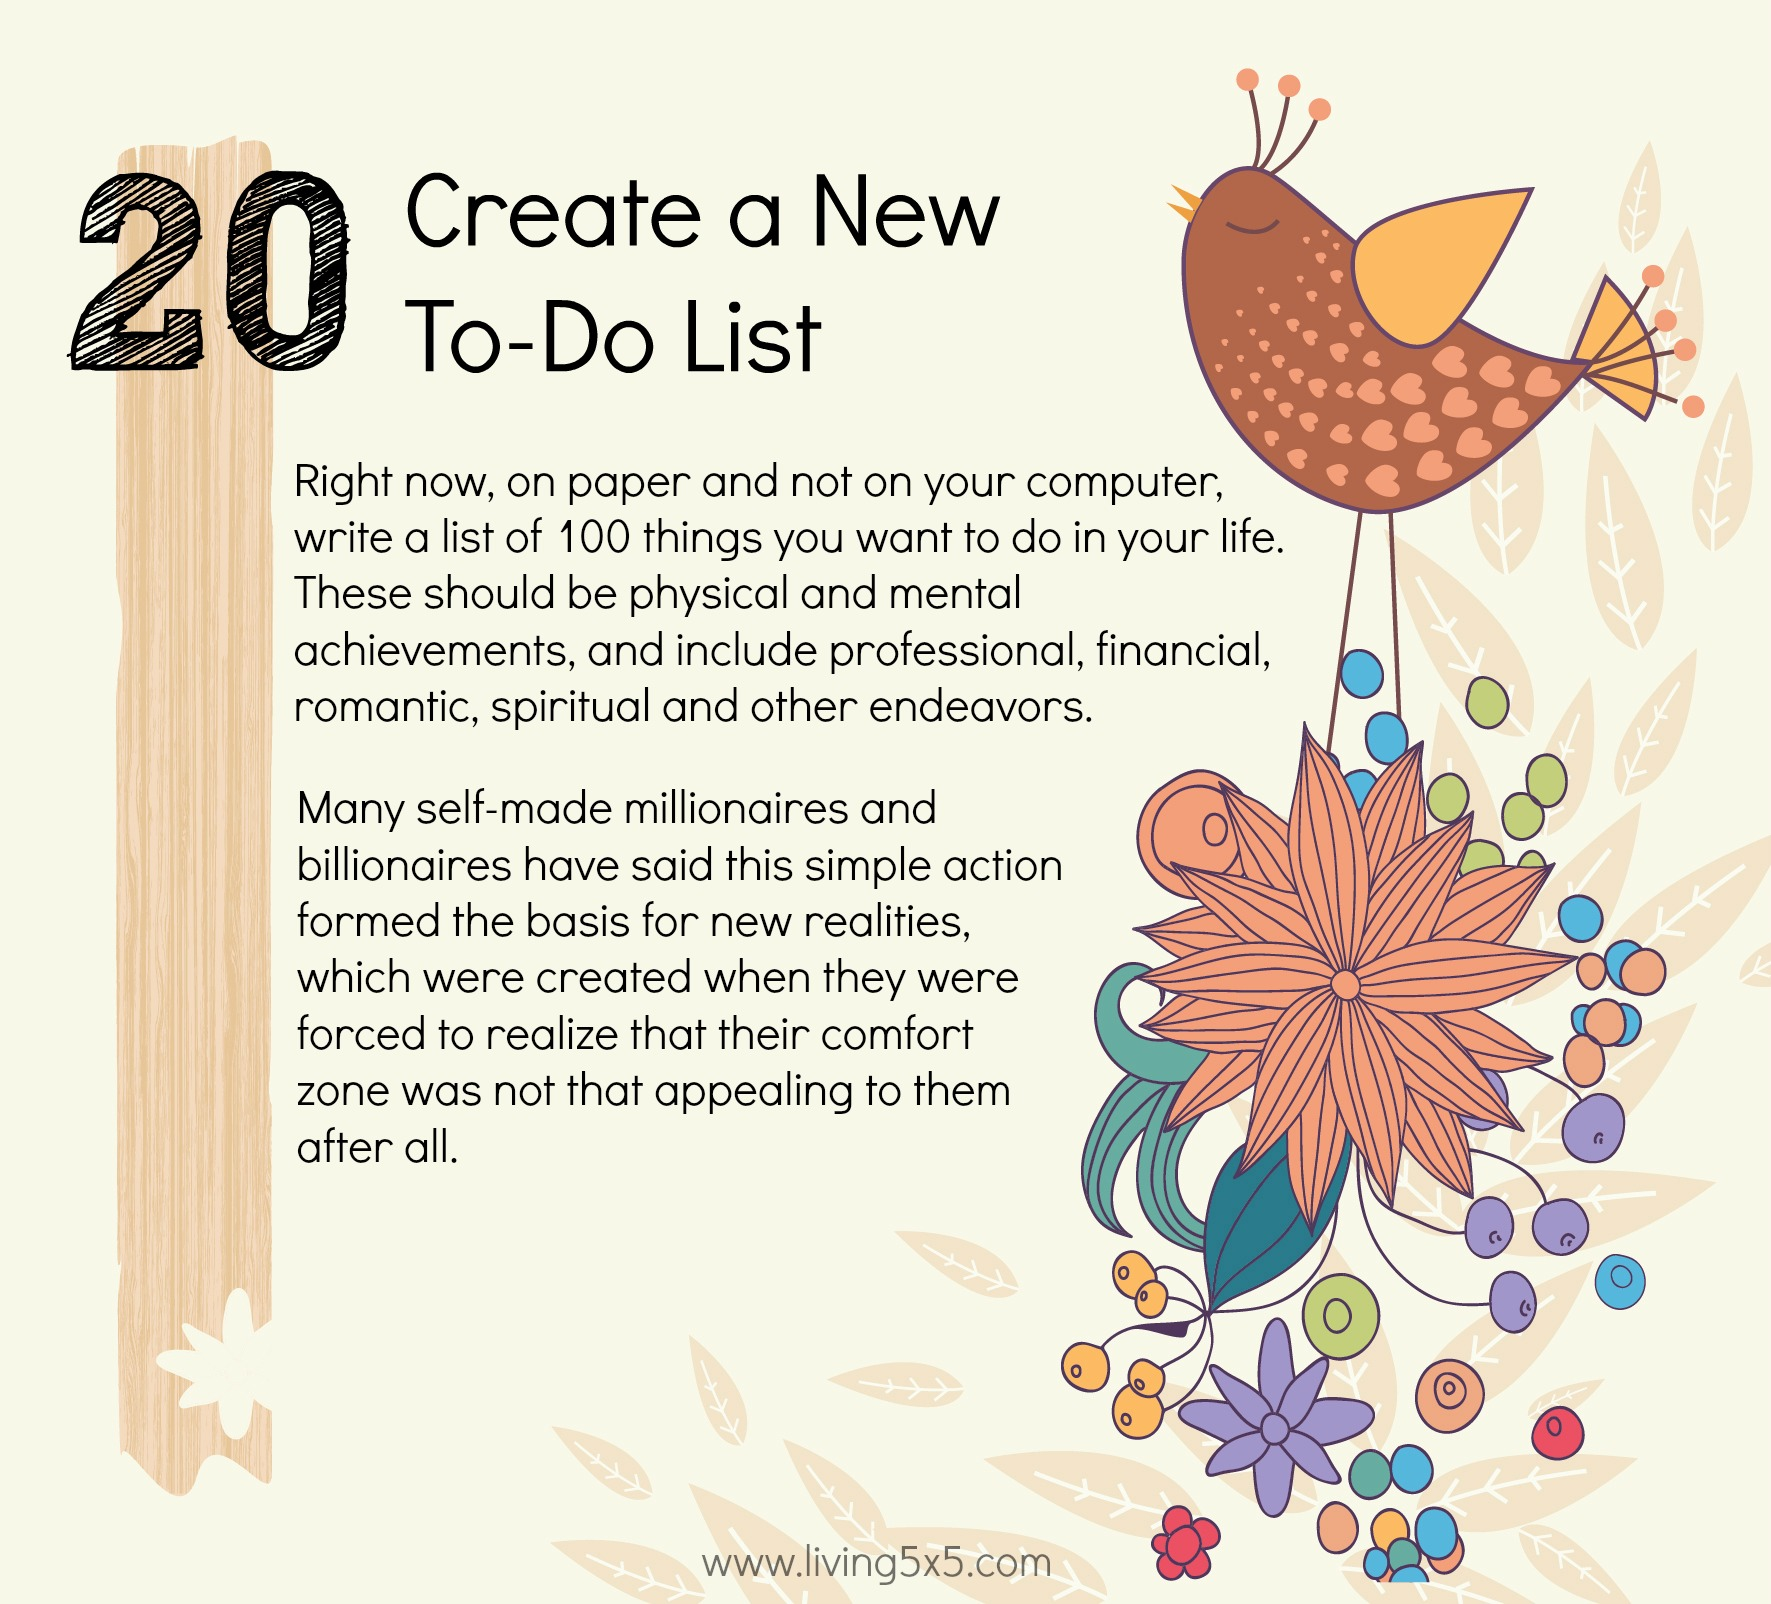 21 Ways To Step Outside Of Your Comfort Zone: #20 Create a To-Do List.